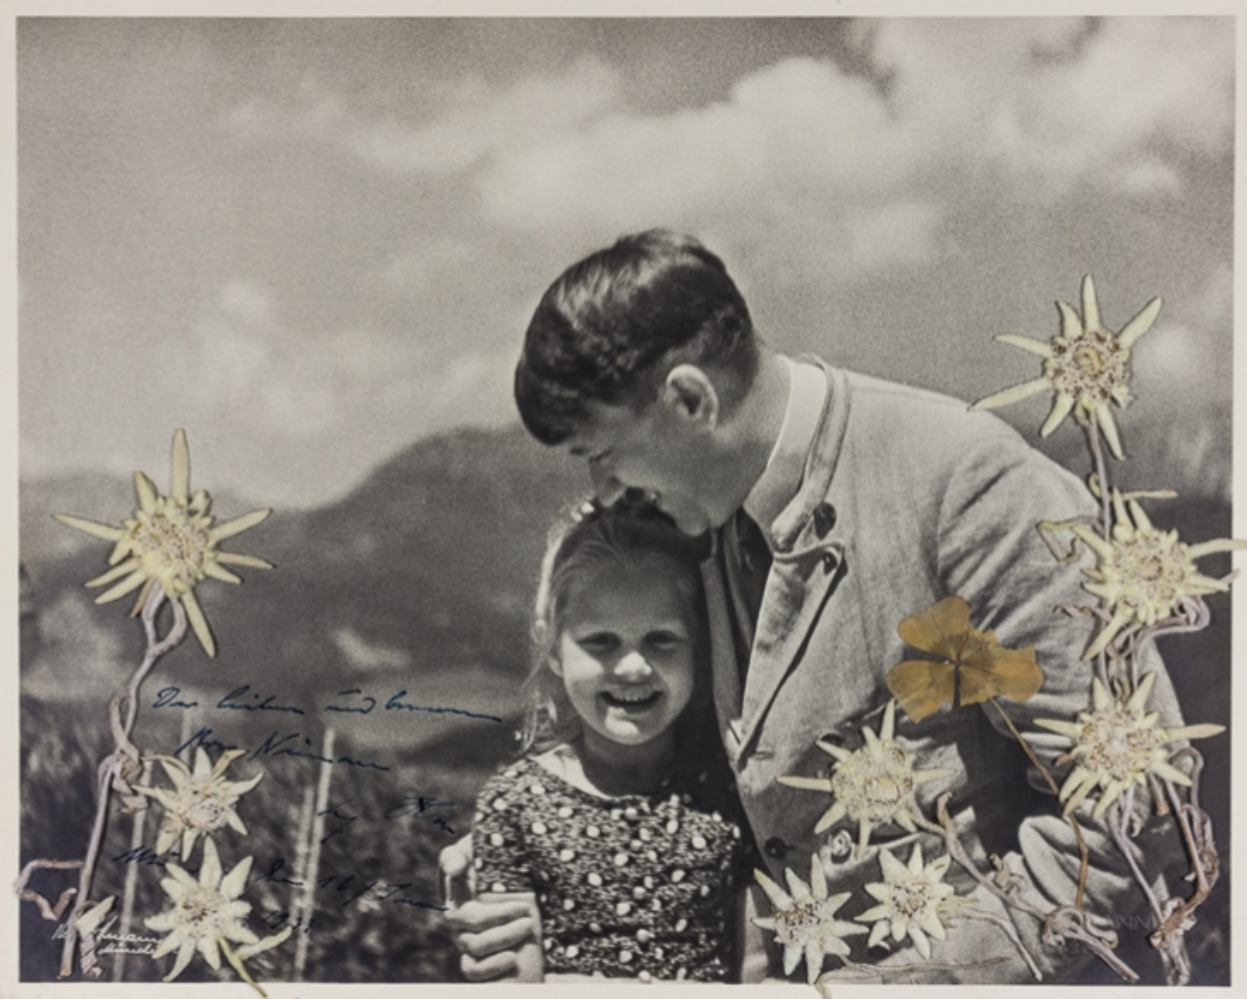 Maryland's Alexander Auction House sells image of Adolf Hitler with Rosa Bernile Nienau, a young Jewish girl who became his sweetheart.